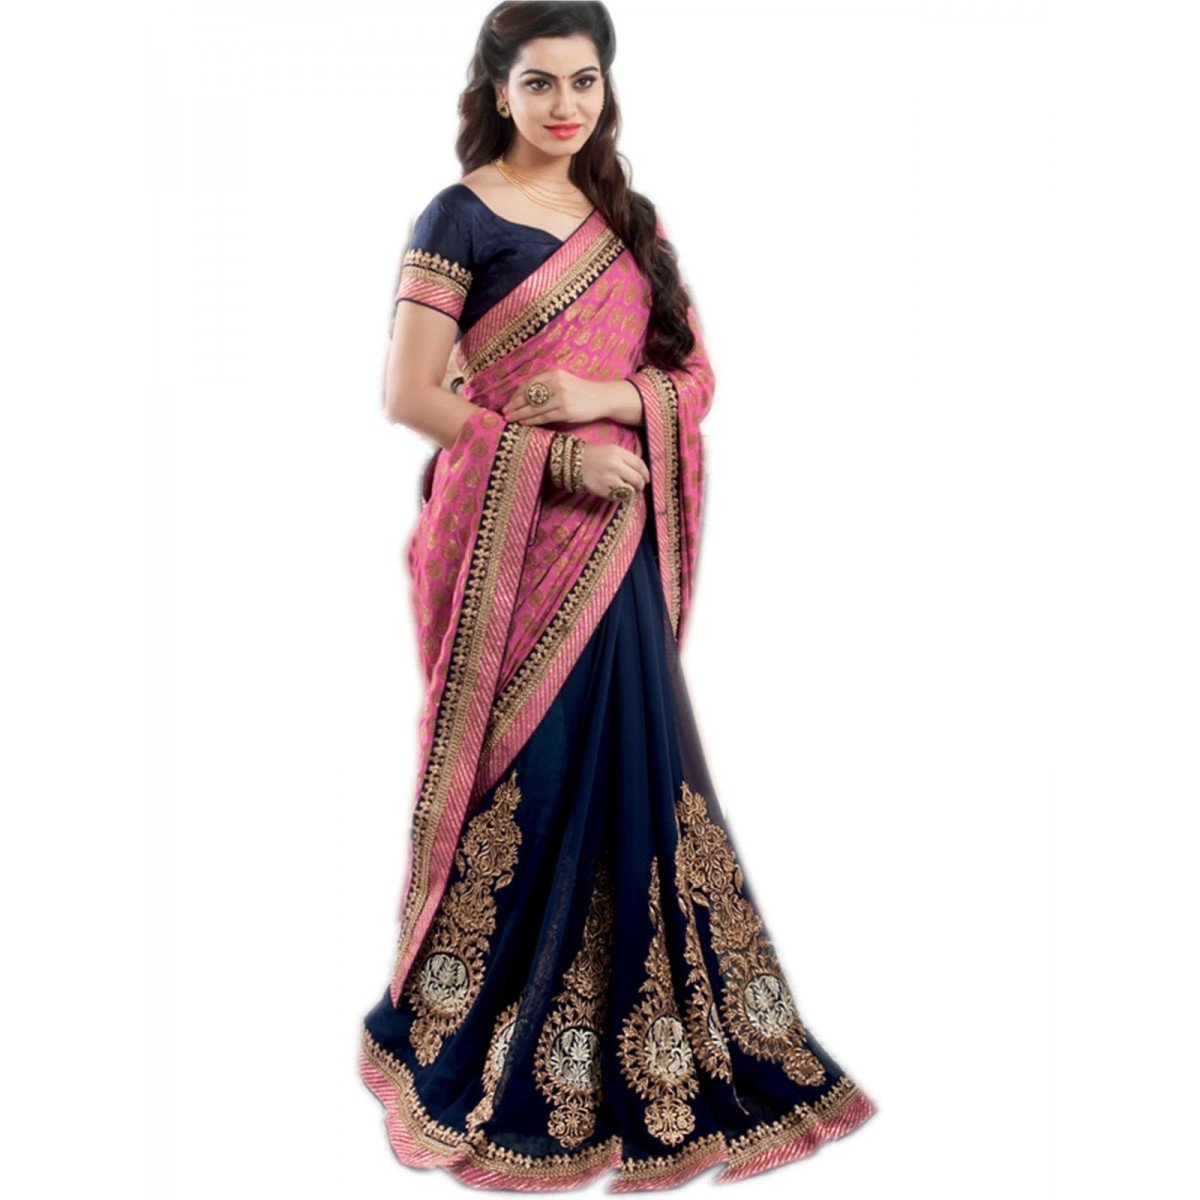 Delisa Fashion Indian/Pakistani Women Designer Party wear Saree Sari ZL1018